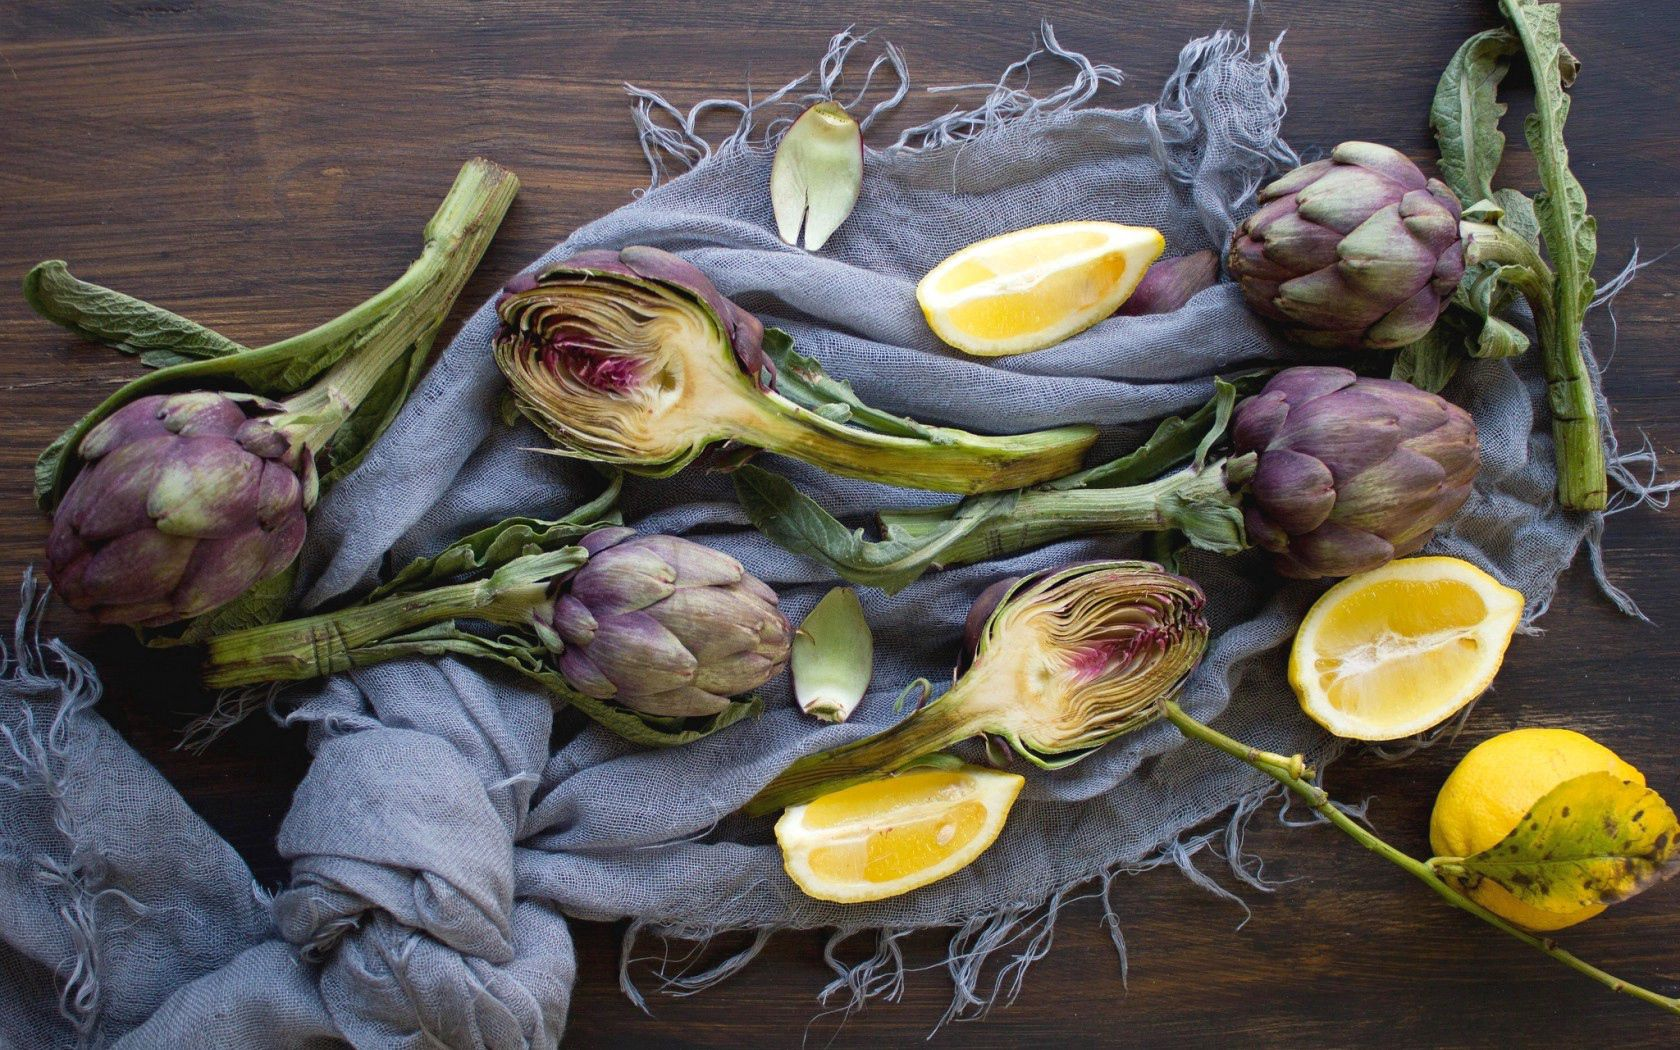 117585 Screensavers and Wallpapers Scarf for phone. Download Fruits, Food, Vegetables, Lemon, Scarf, Artichoke pictures for free